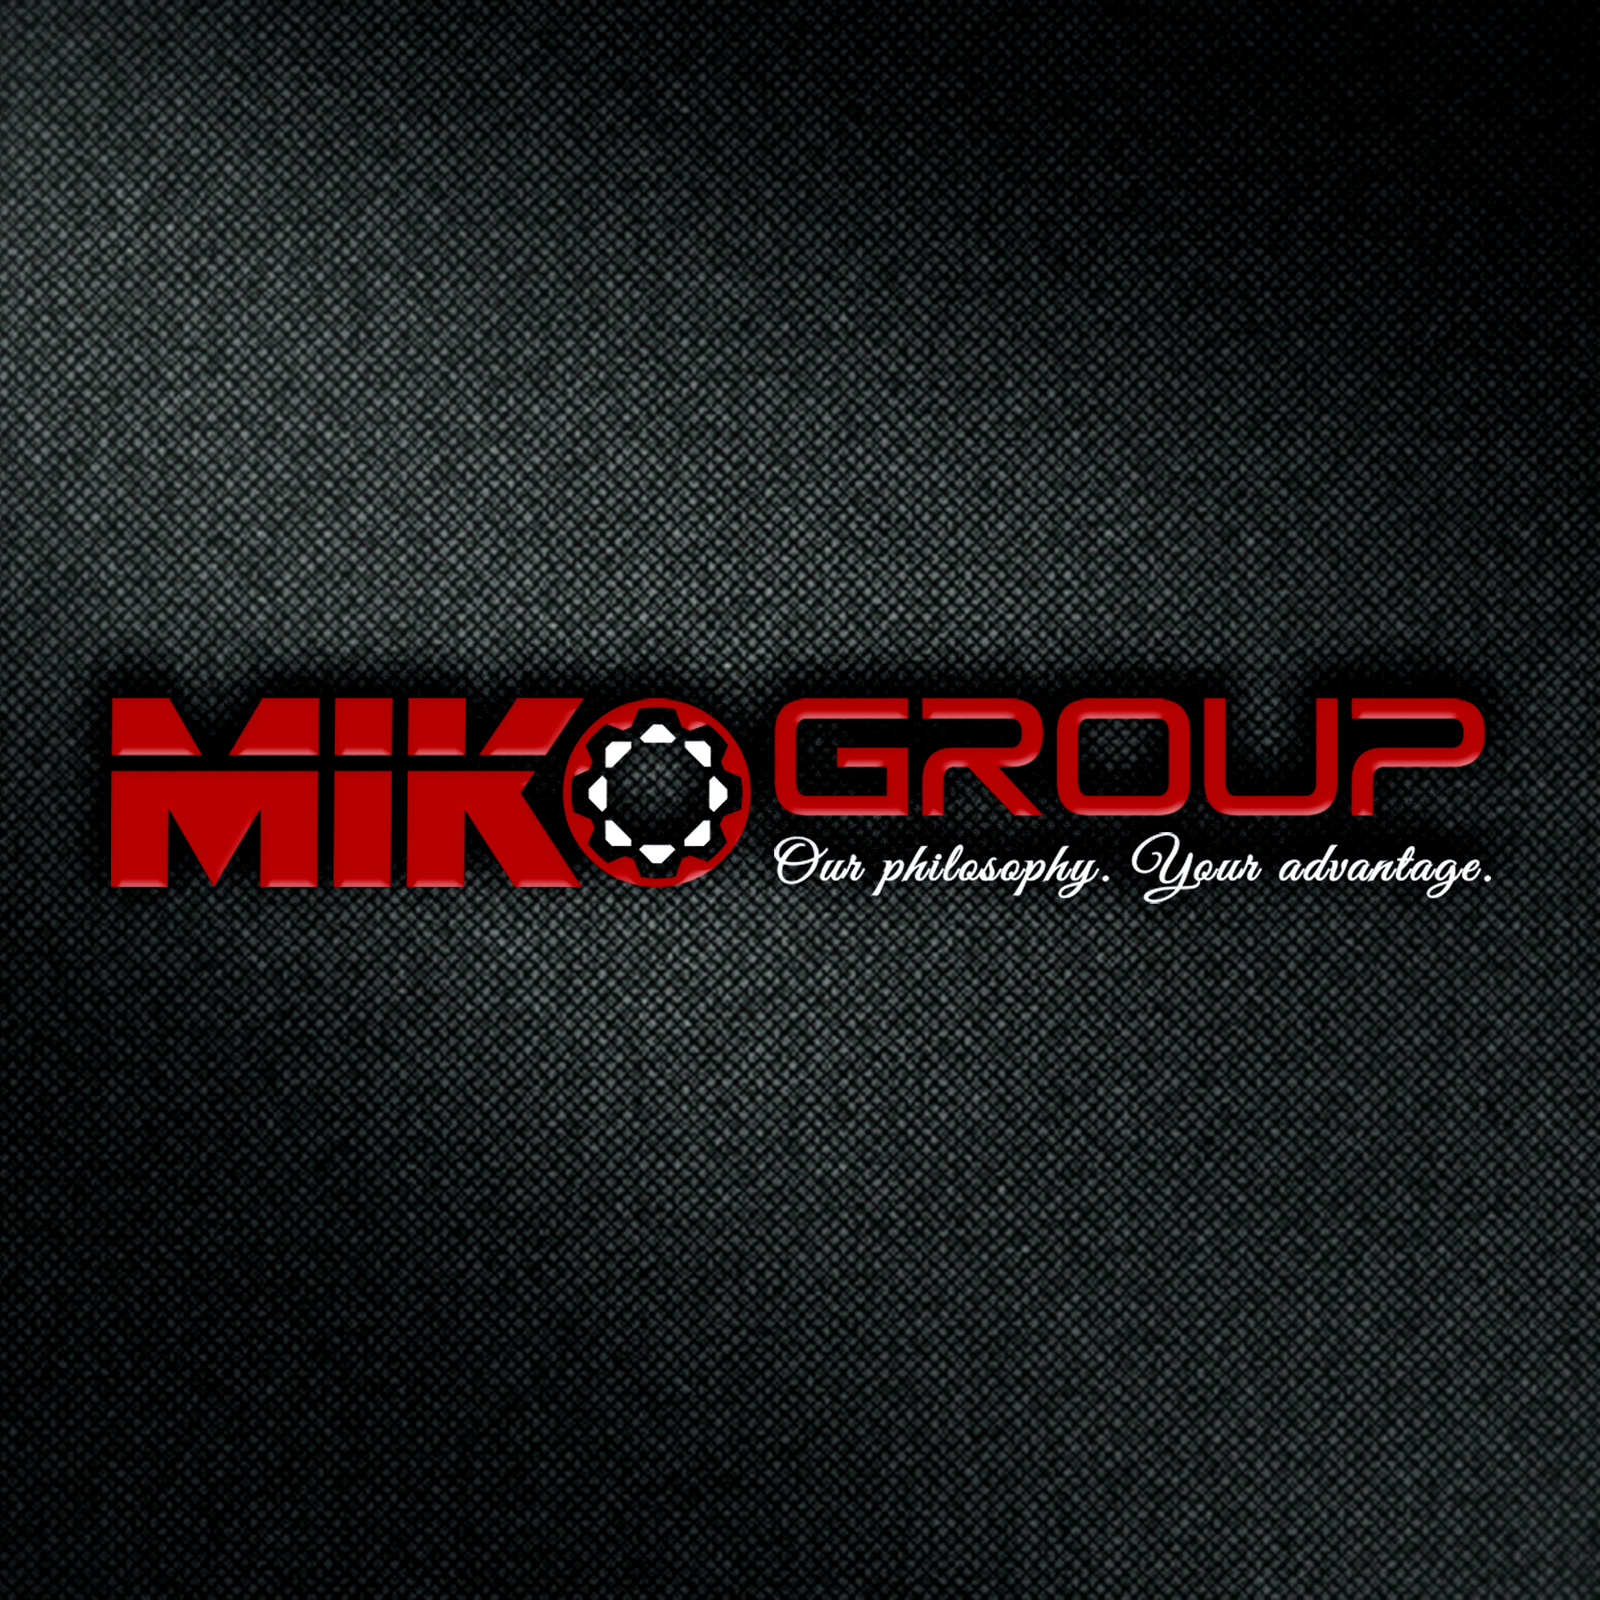 Mikogroup International Trading, S.L.